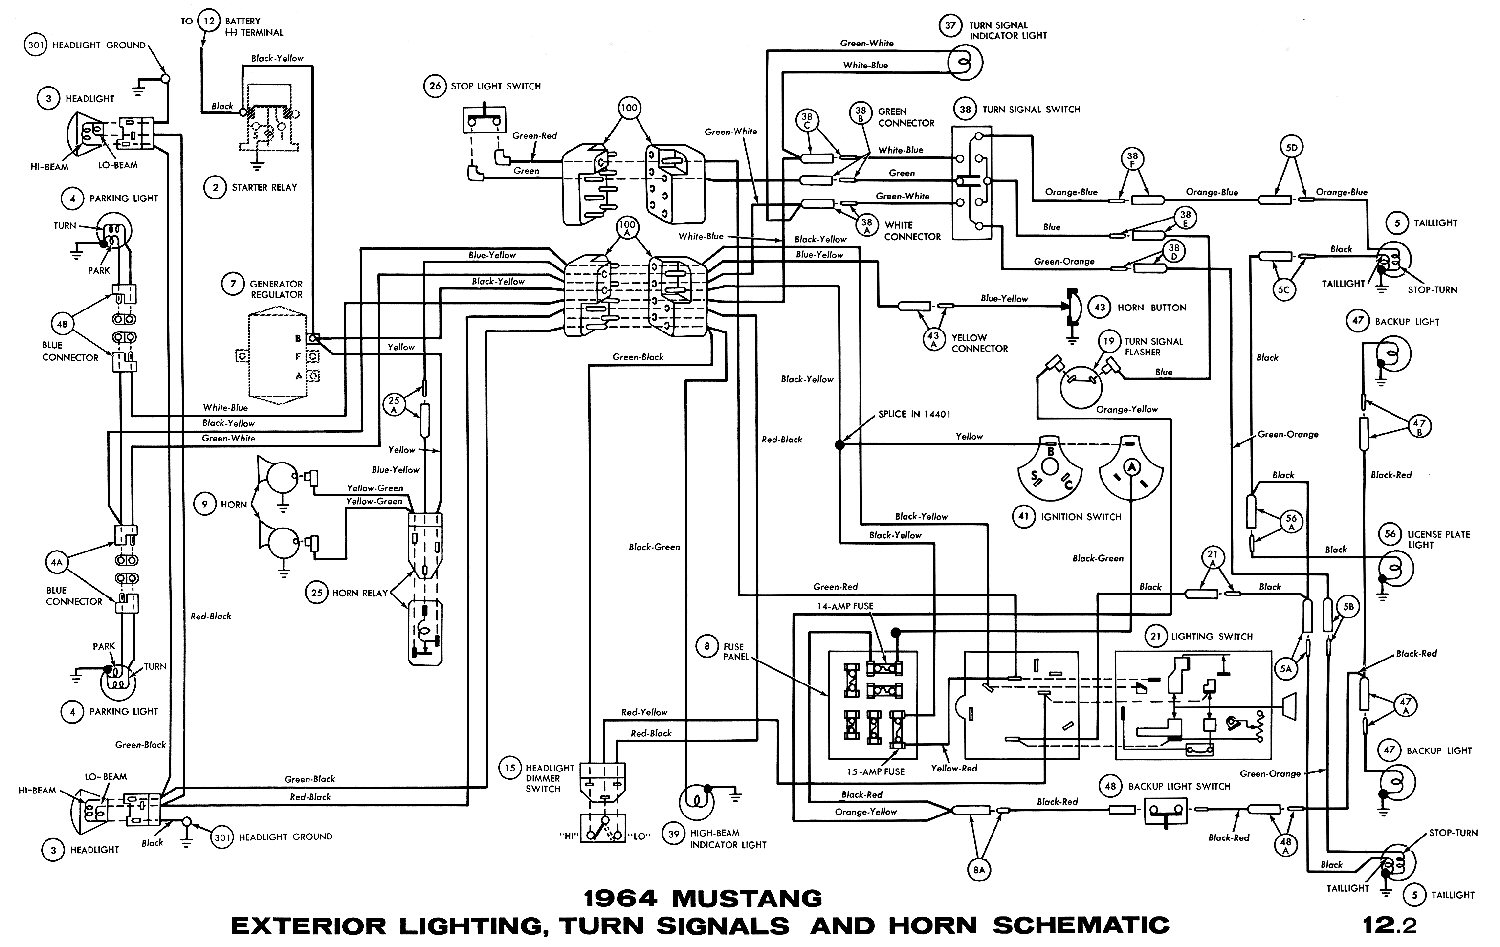 1964i 1964 mustang wiring diagrams average joe restoration 1965 mustang turn signal wiring diagram at crackthecode.co